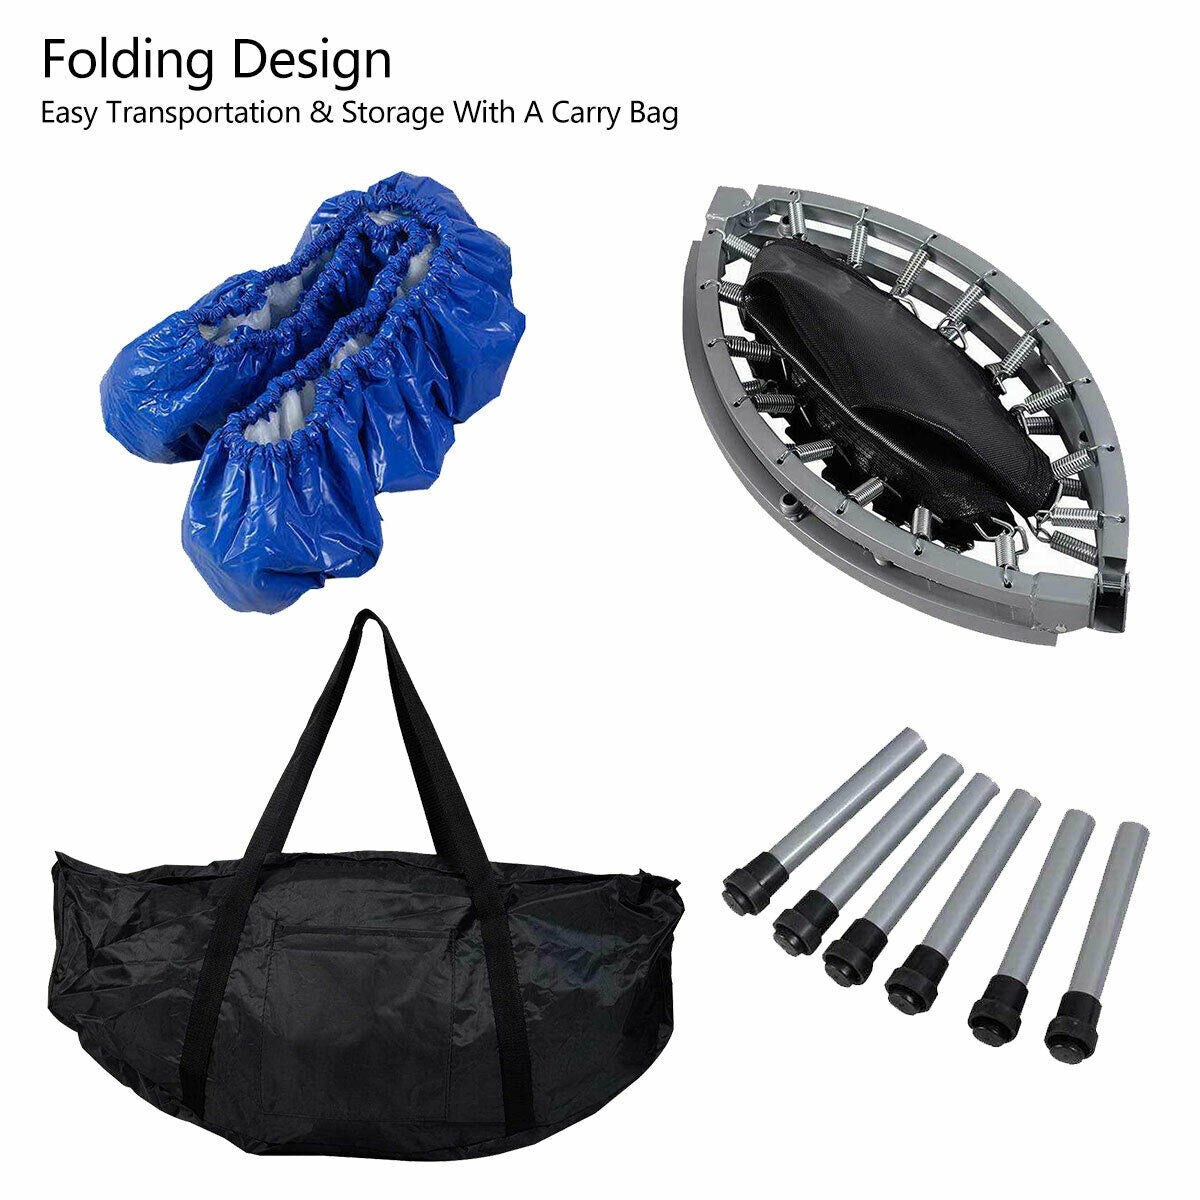 Foldable 38 Quot Rebounder Trampoline With Carrying Bag